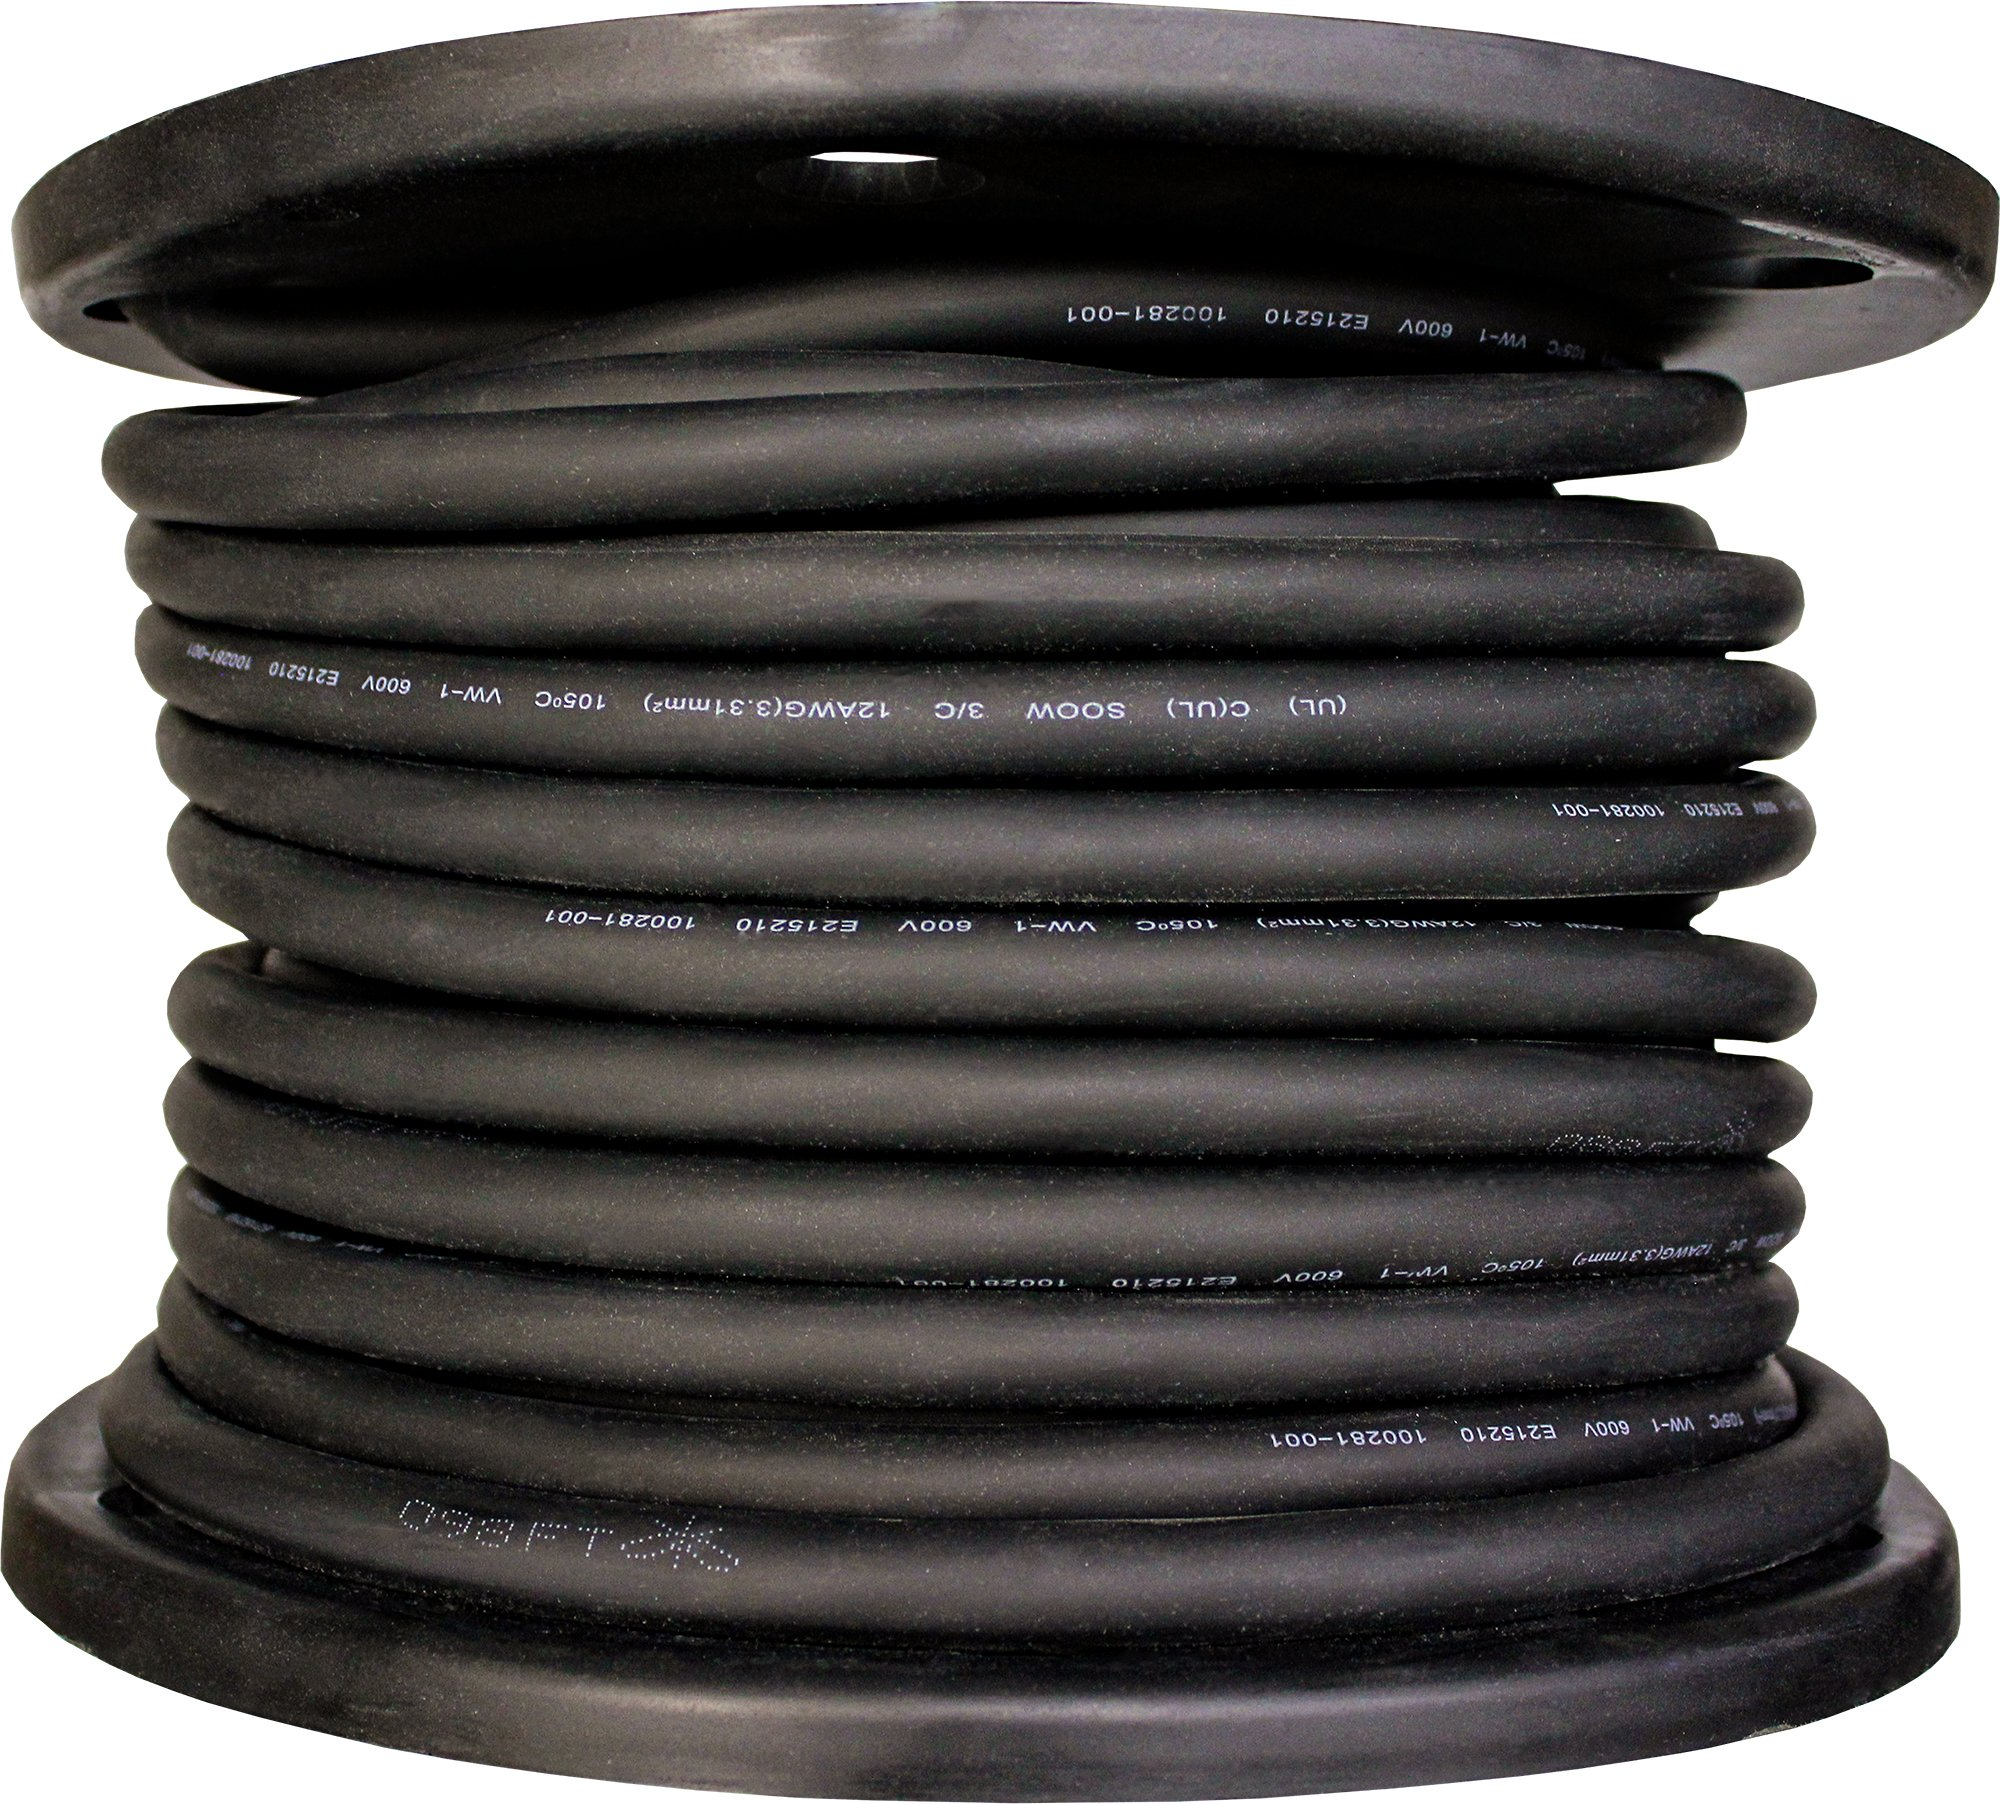 Cerrowire 283-3804E 150-Feet 10/4 SOOW Rubber Flexible Extra Heavy Duty Cord, Black